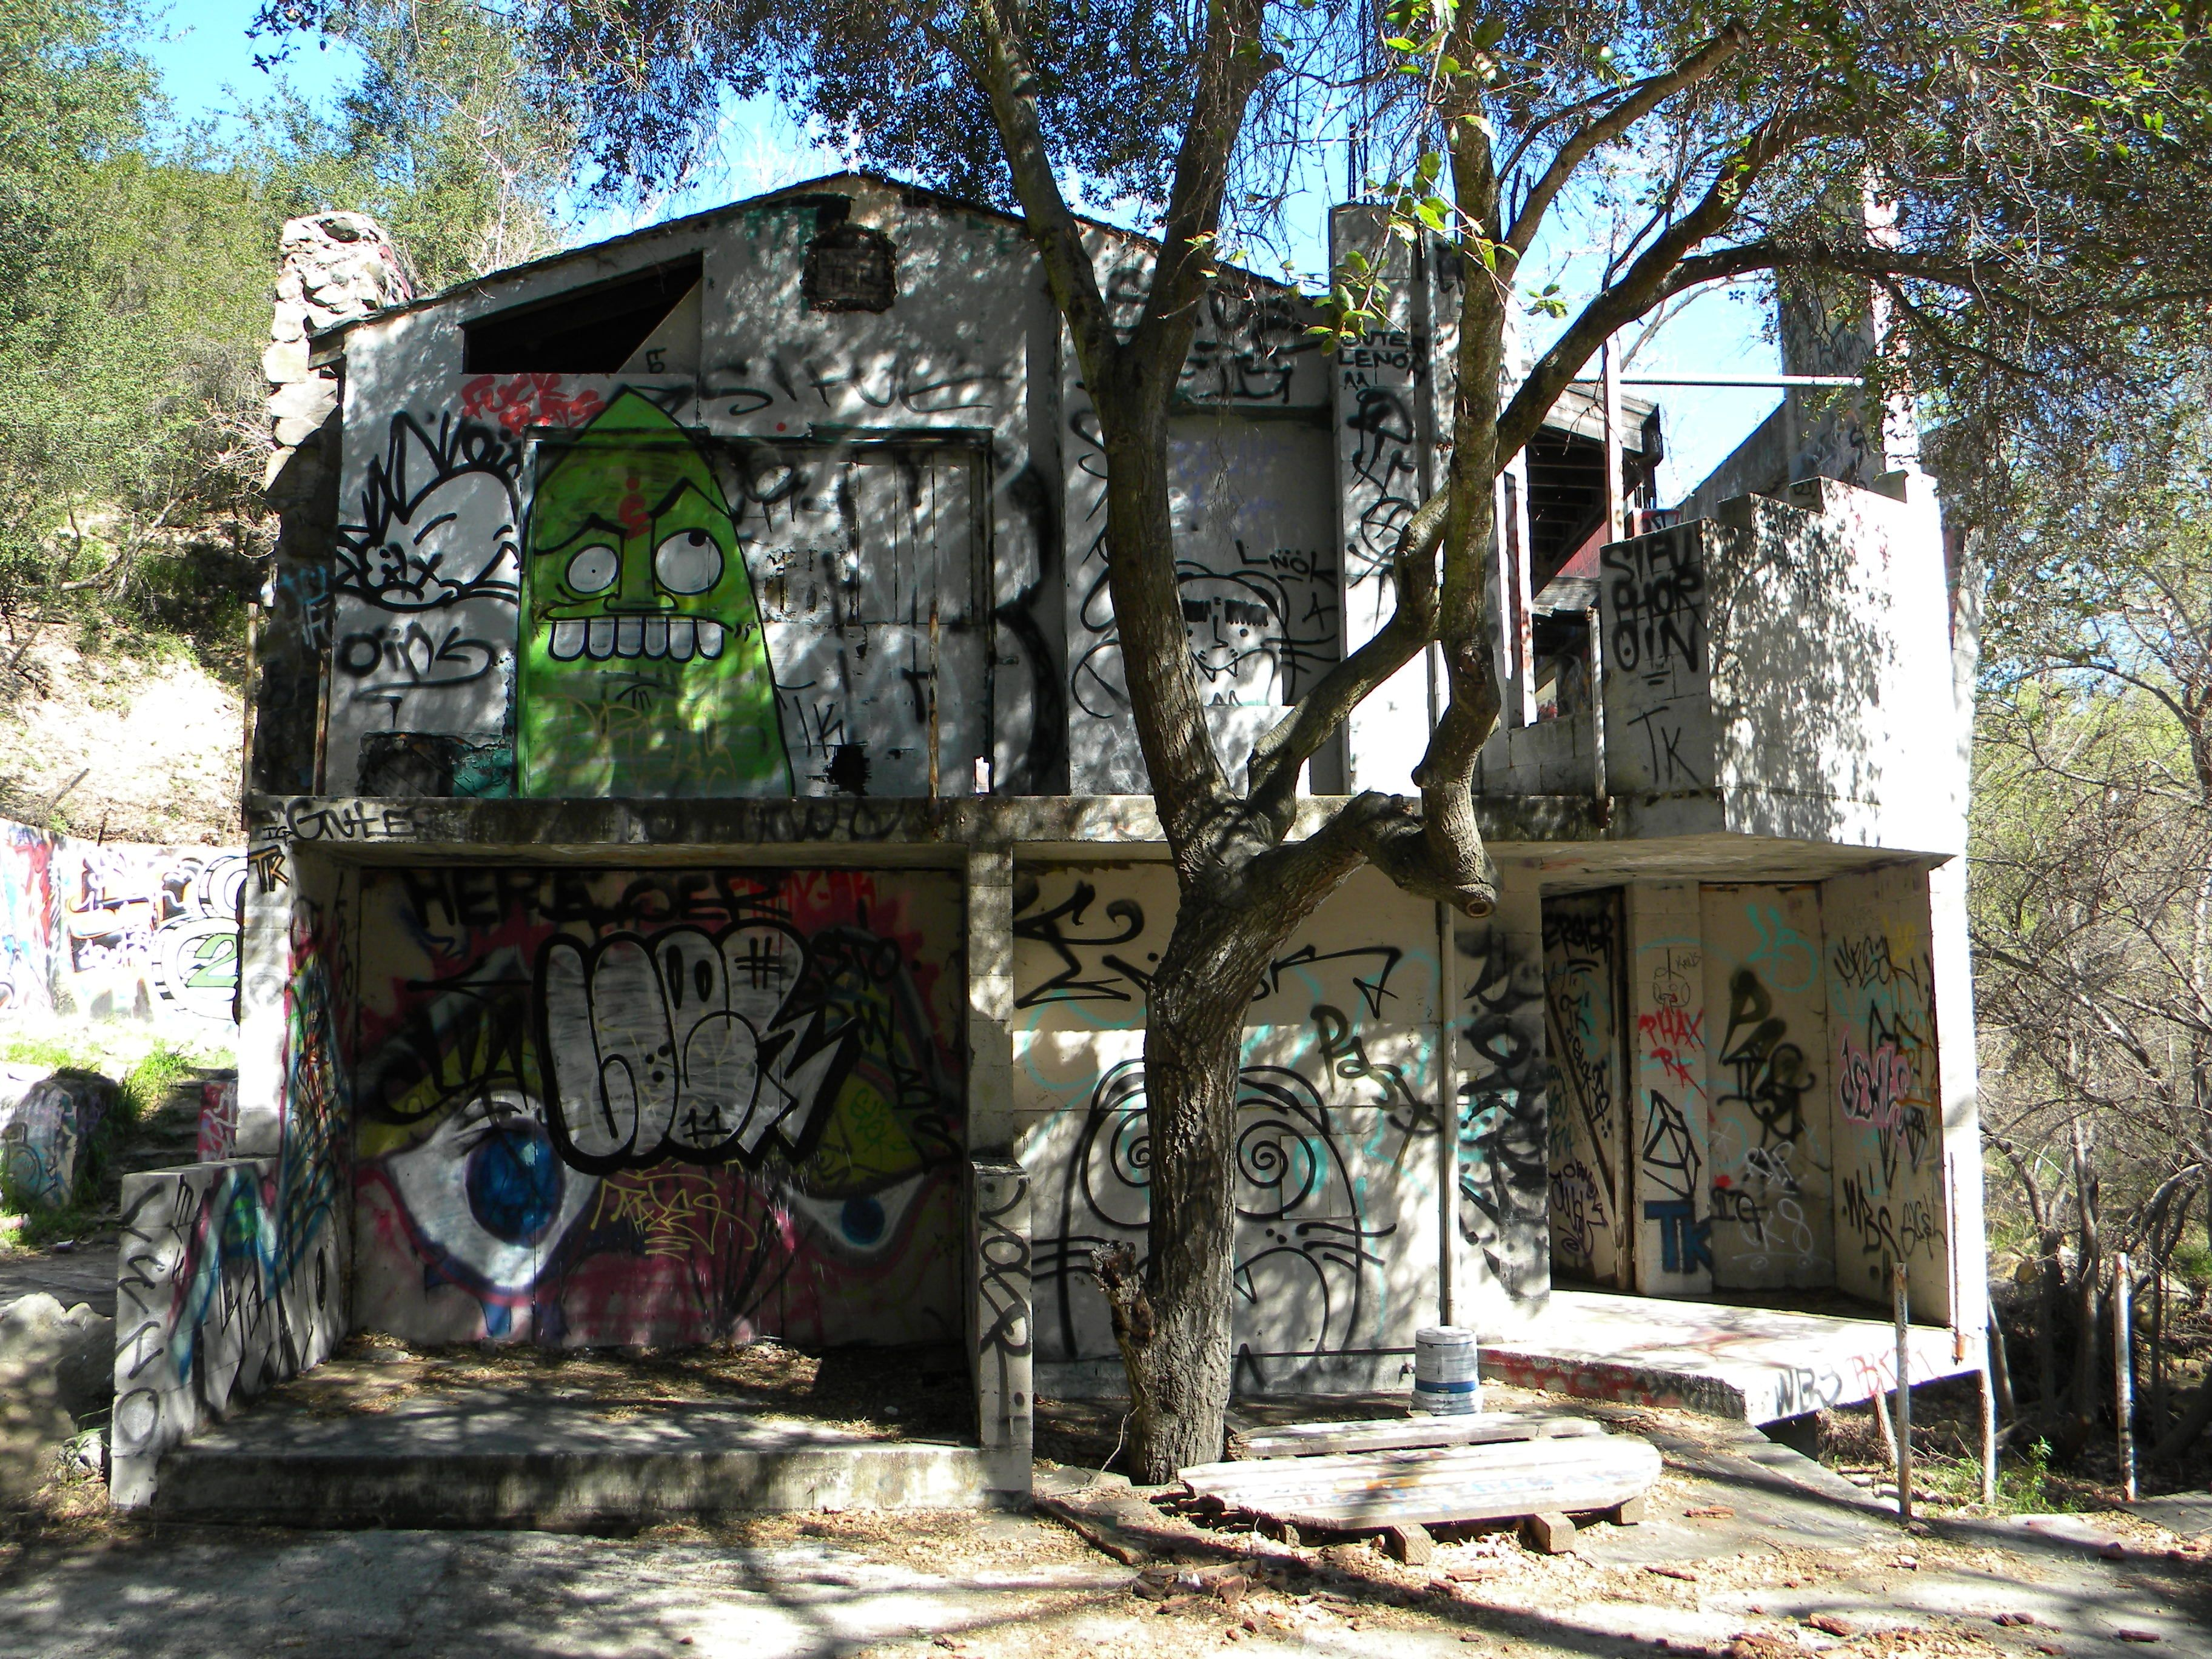 The Mysterious Abandoned House In Topanga Canyon California